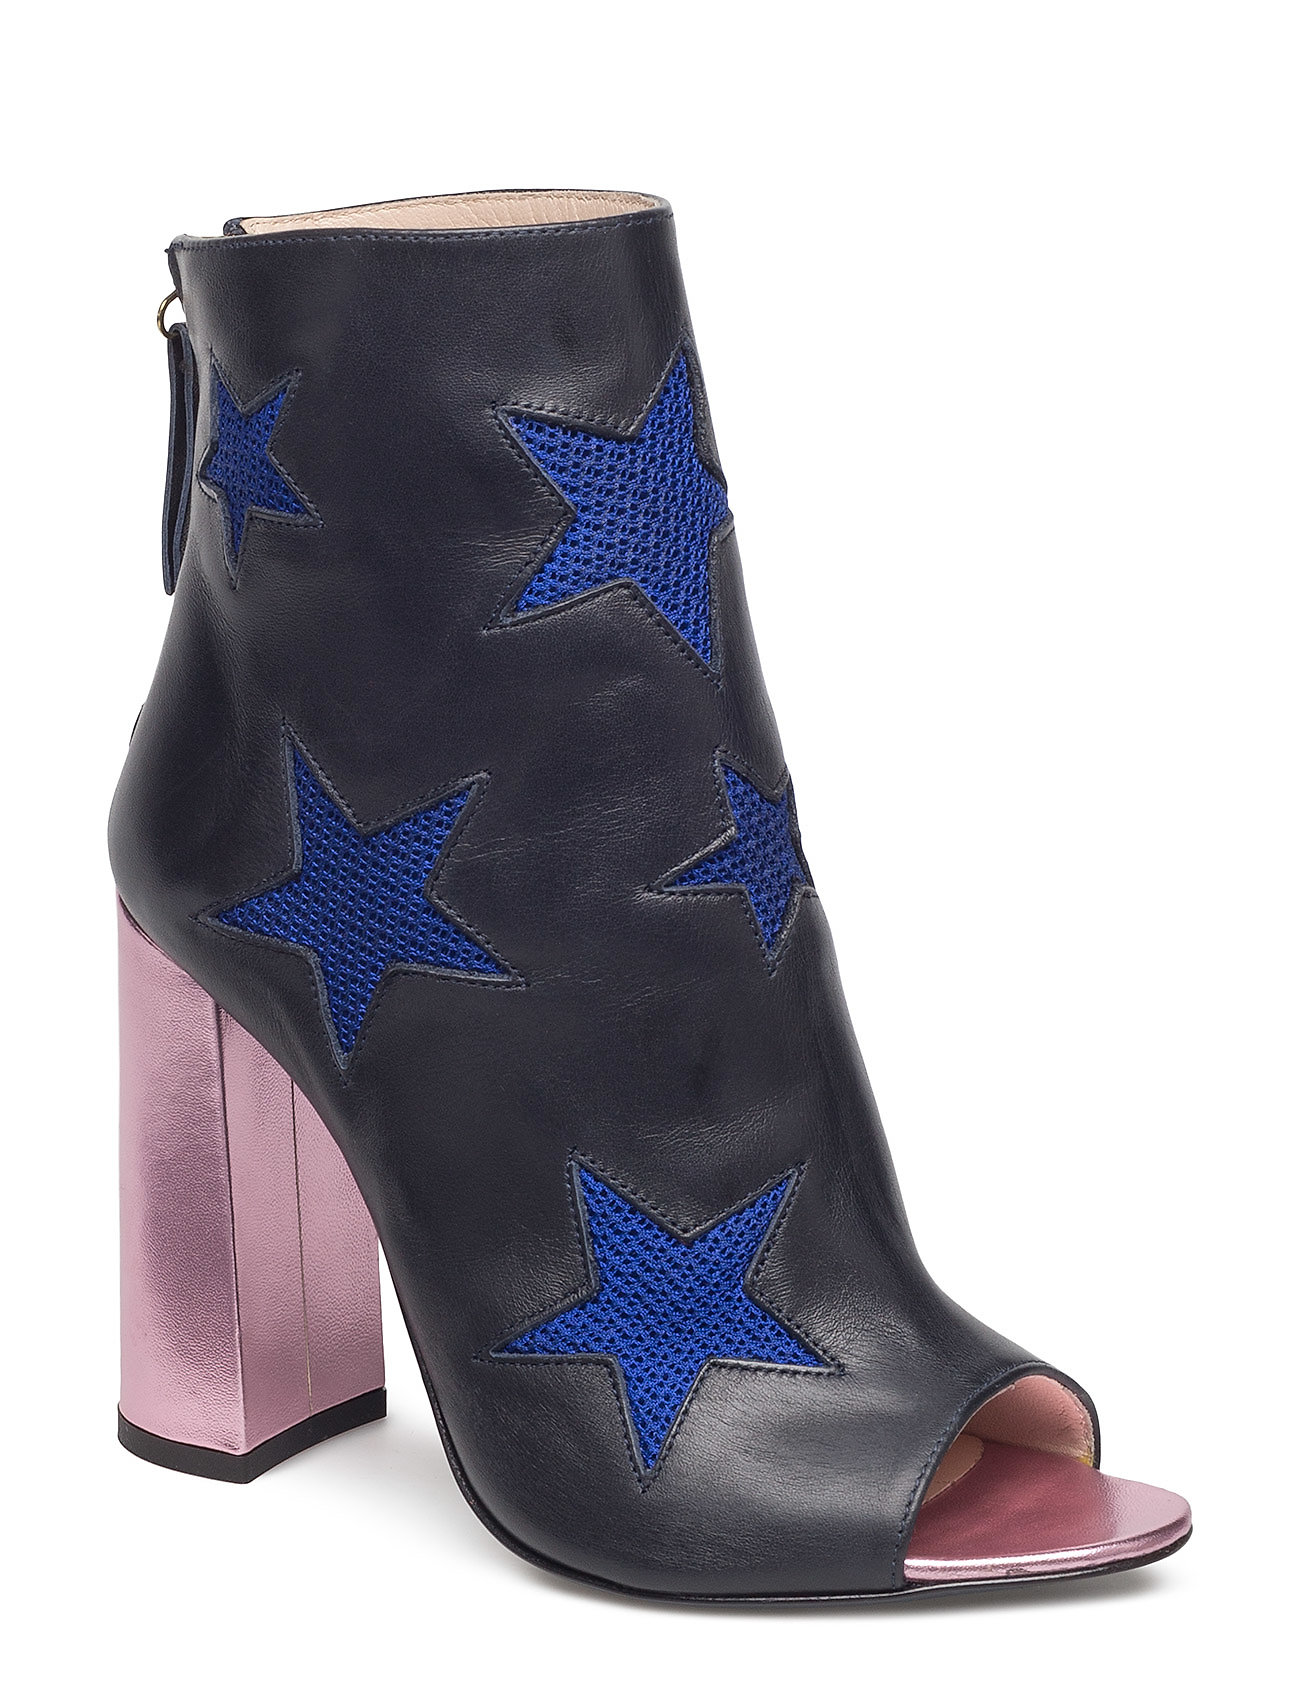 Image of Mesh Star Ankle Boot Shoes Boots Ankle Boots Ankle Boot - Heel Blå Tommy Hilfiger (3486602569)